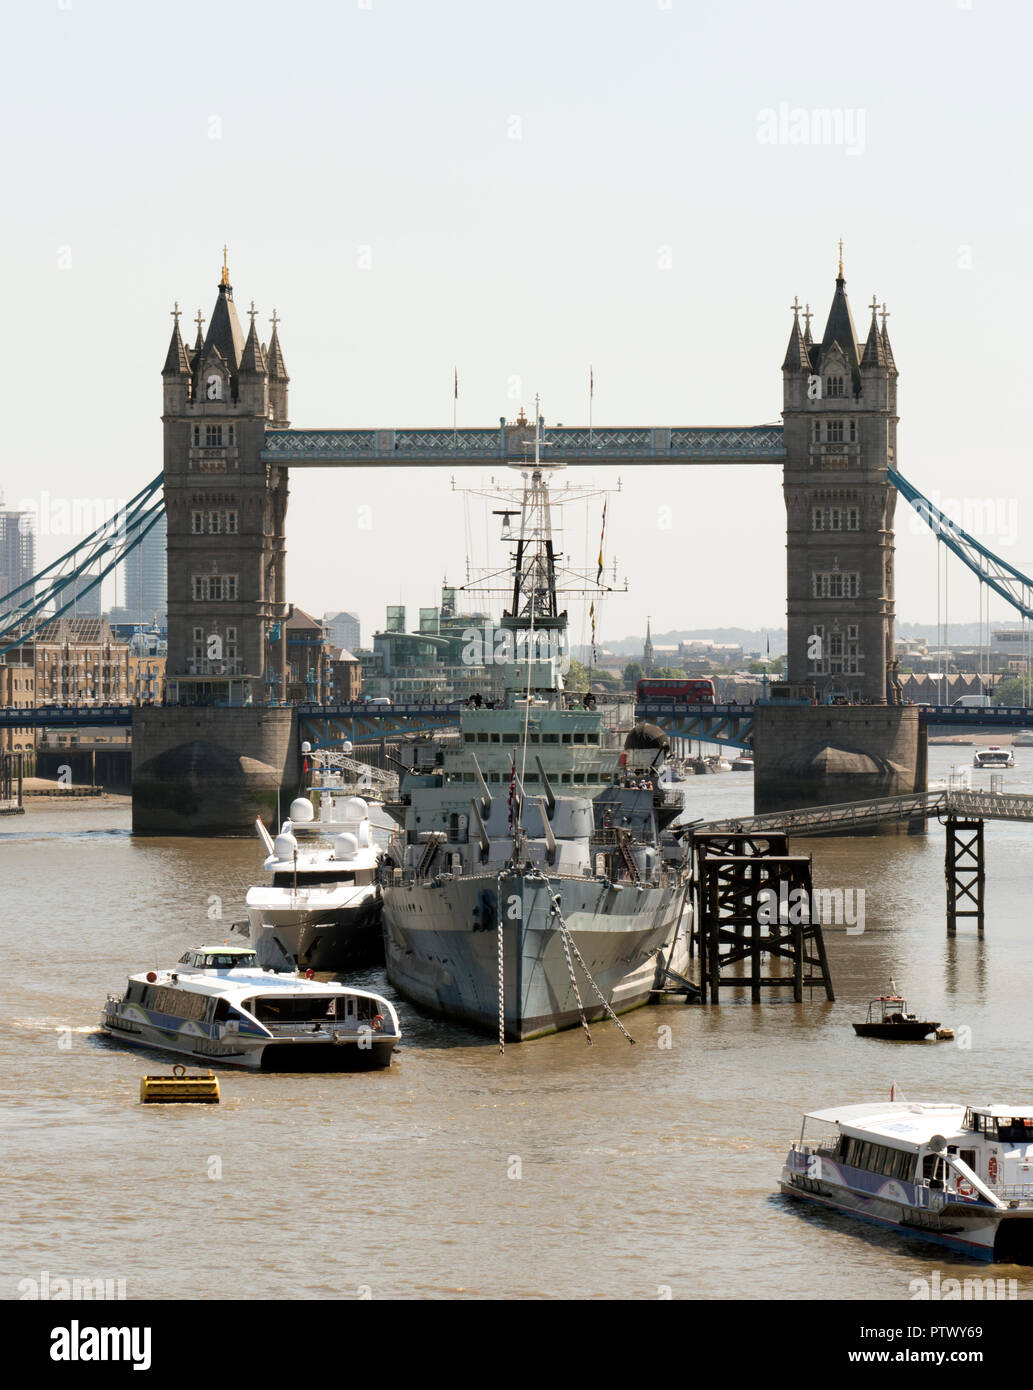 Royal Navy warship HMS Belfast moored on the River Thames in front of Tower Bridge, London, England. - Stock Image